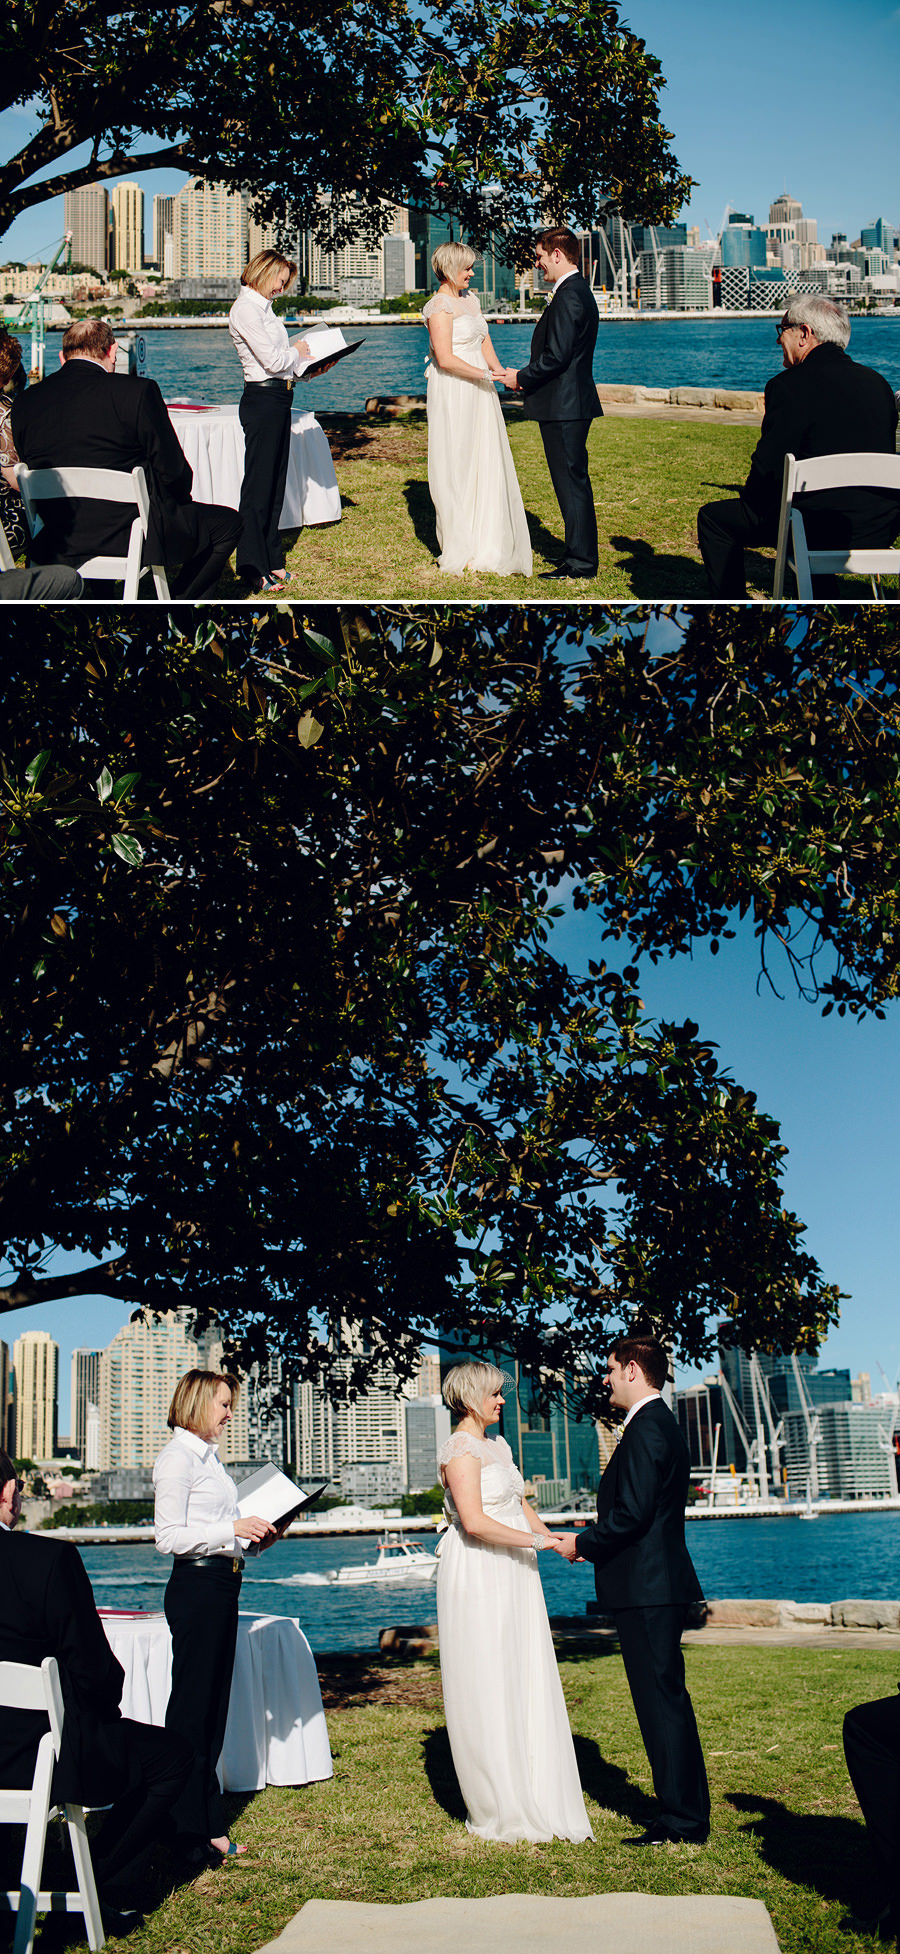 Balmain Wedding Photographer: Ceremony